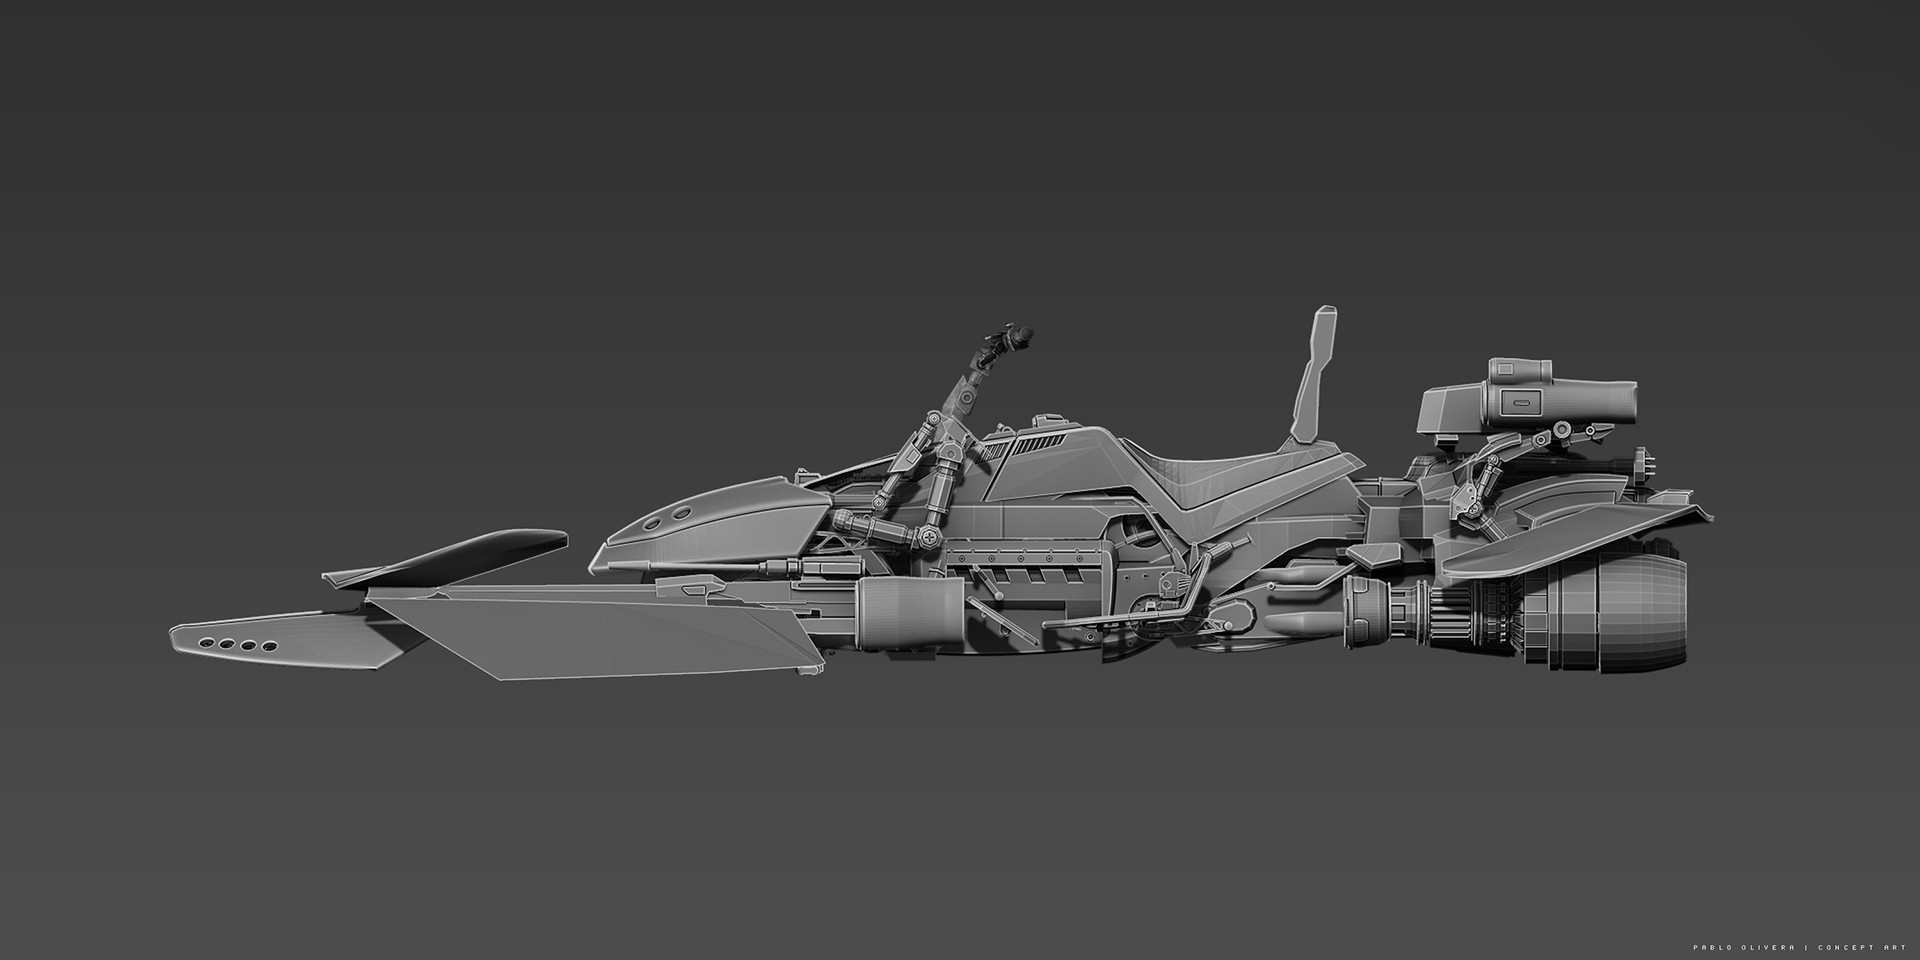 Pablo olivera concept 02 speeder bike star wars boba fett vista lateral v02 black crudo baja